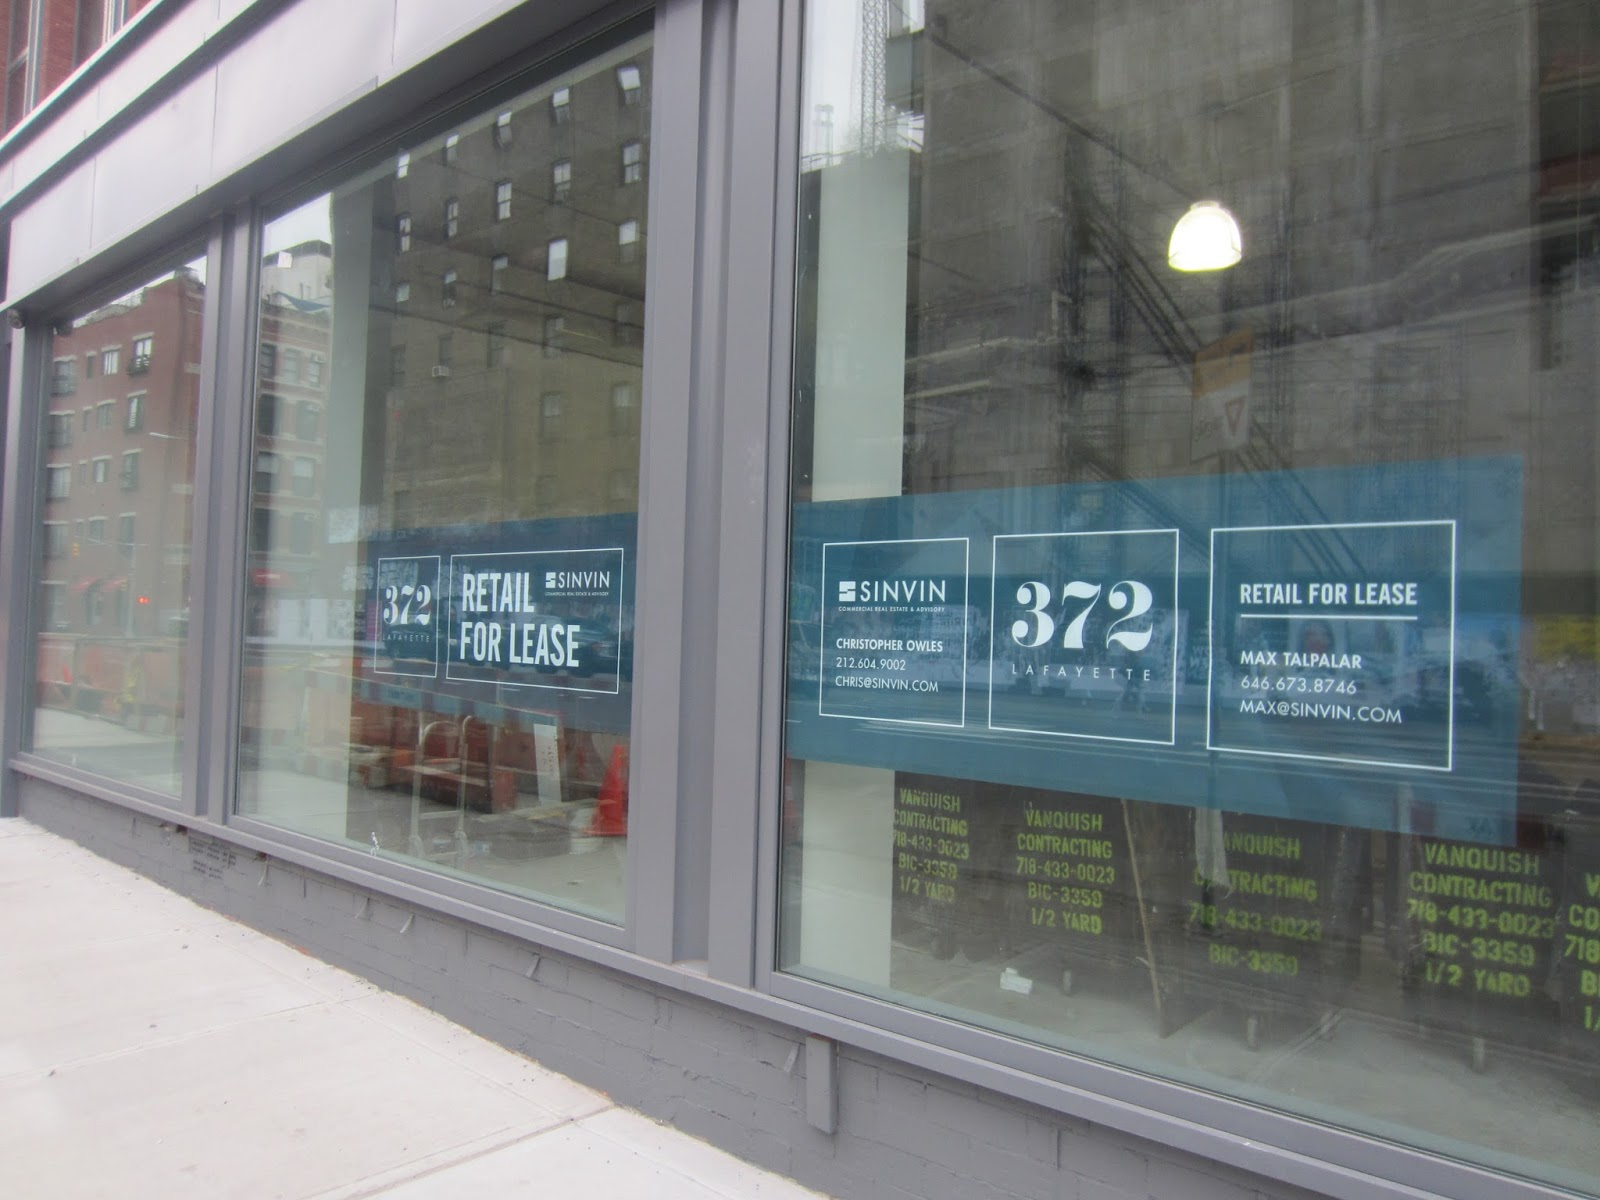 Ev grieve 2 39 modern jewel box retail spaces 39 for rent on lafayette - Small retail space collection ...